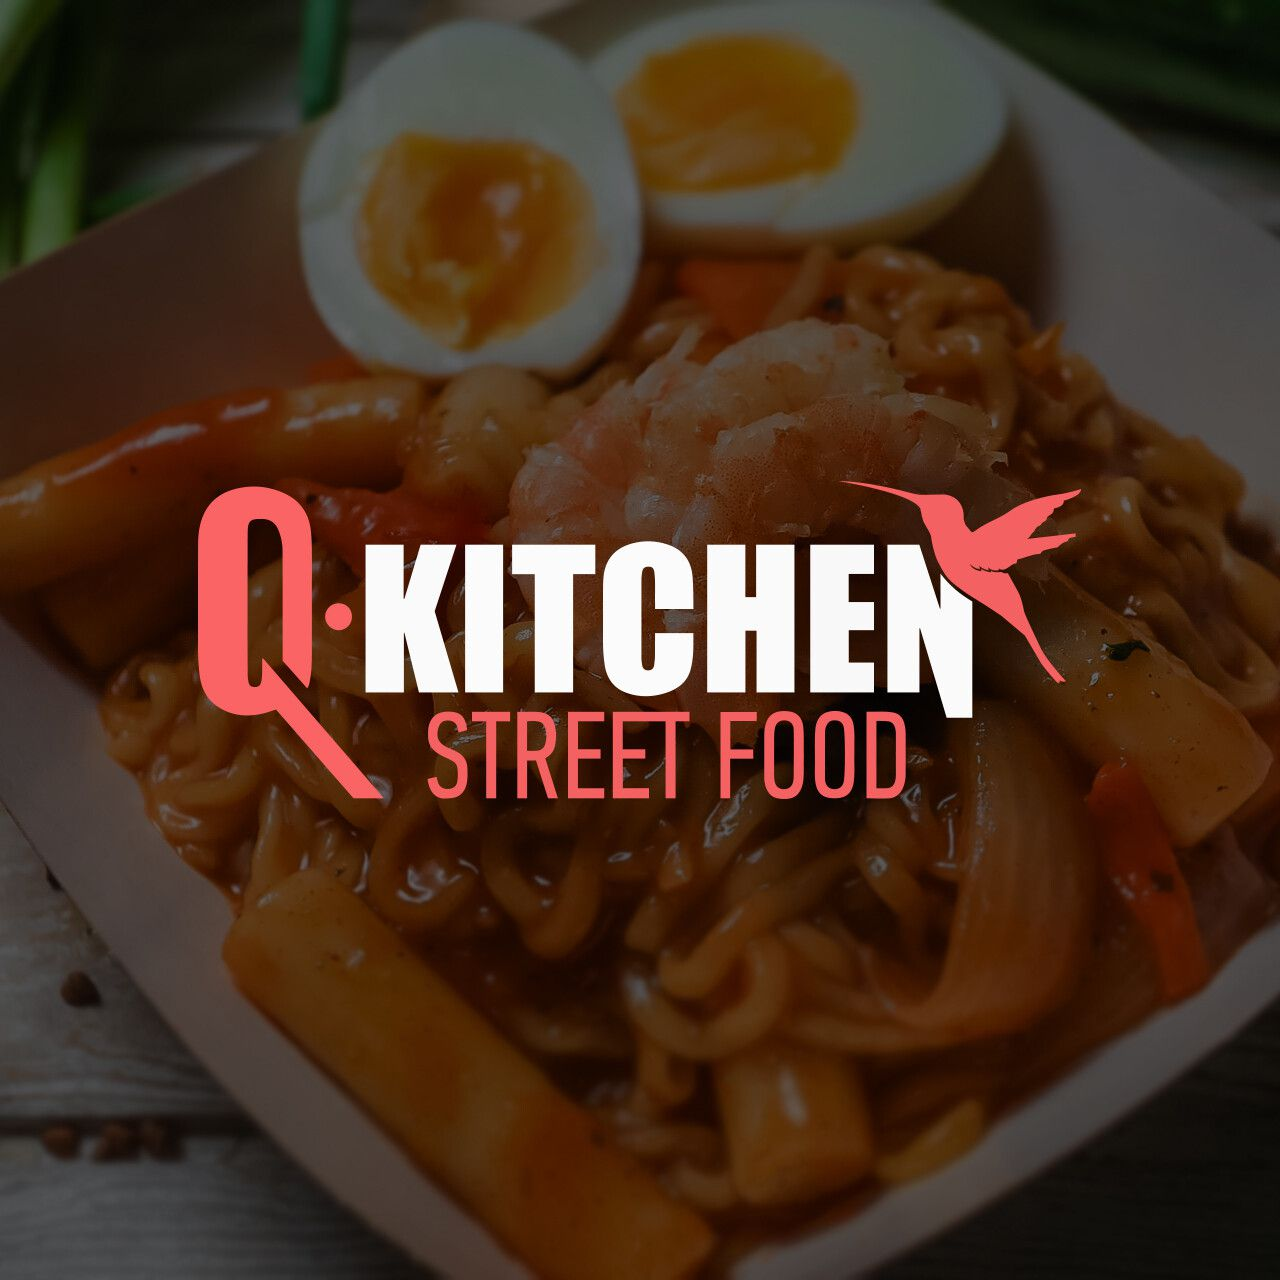 Q kitchen